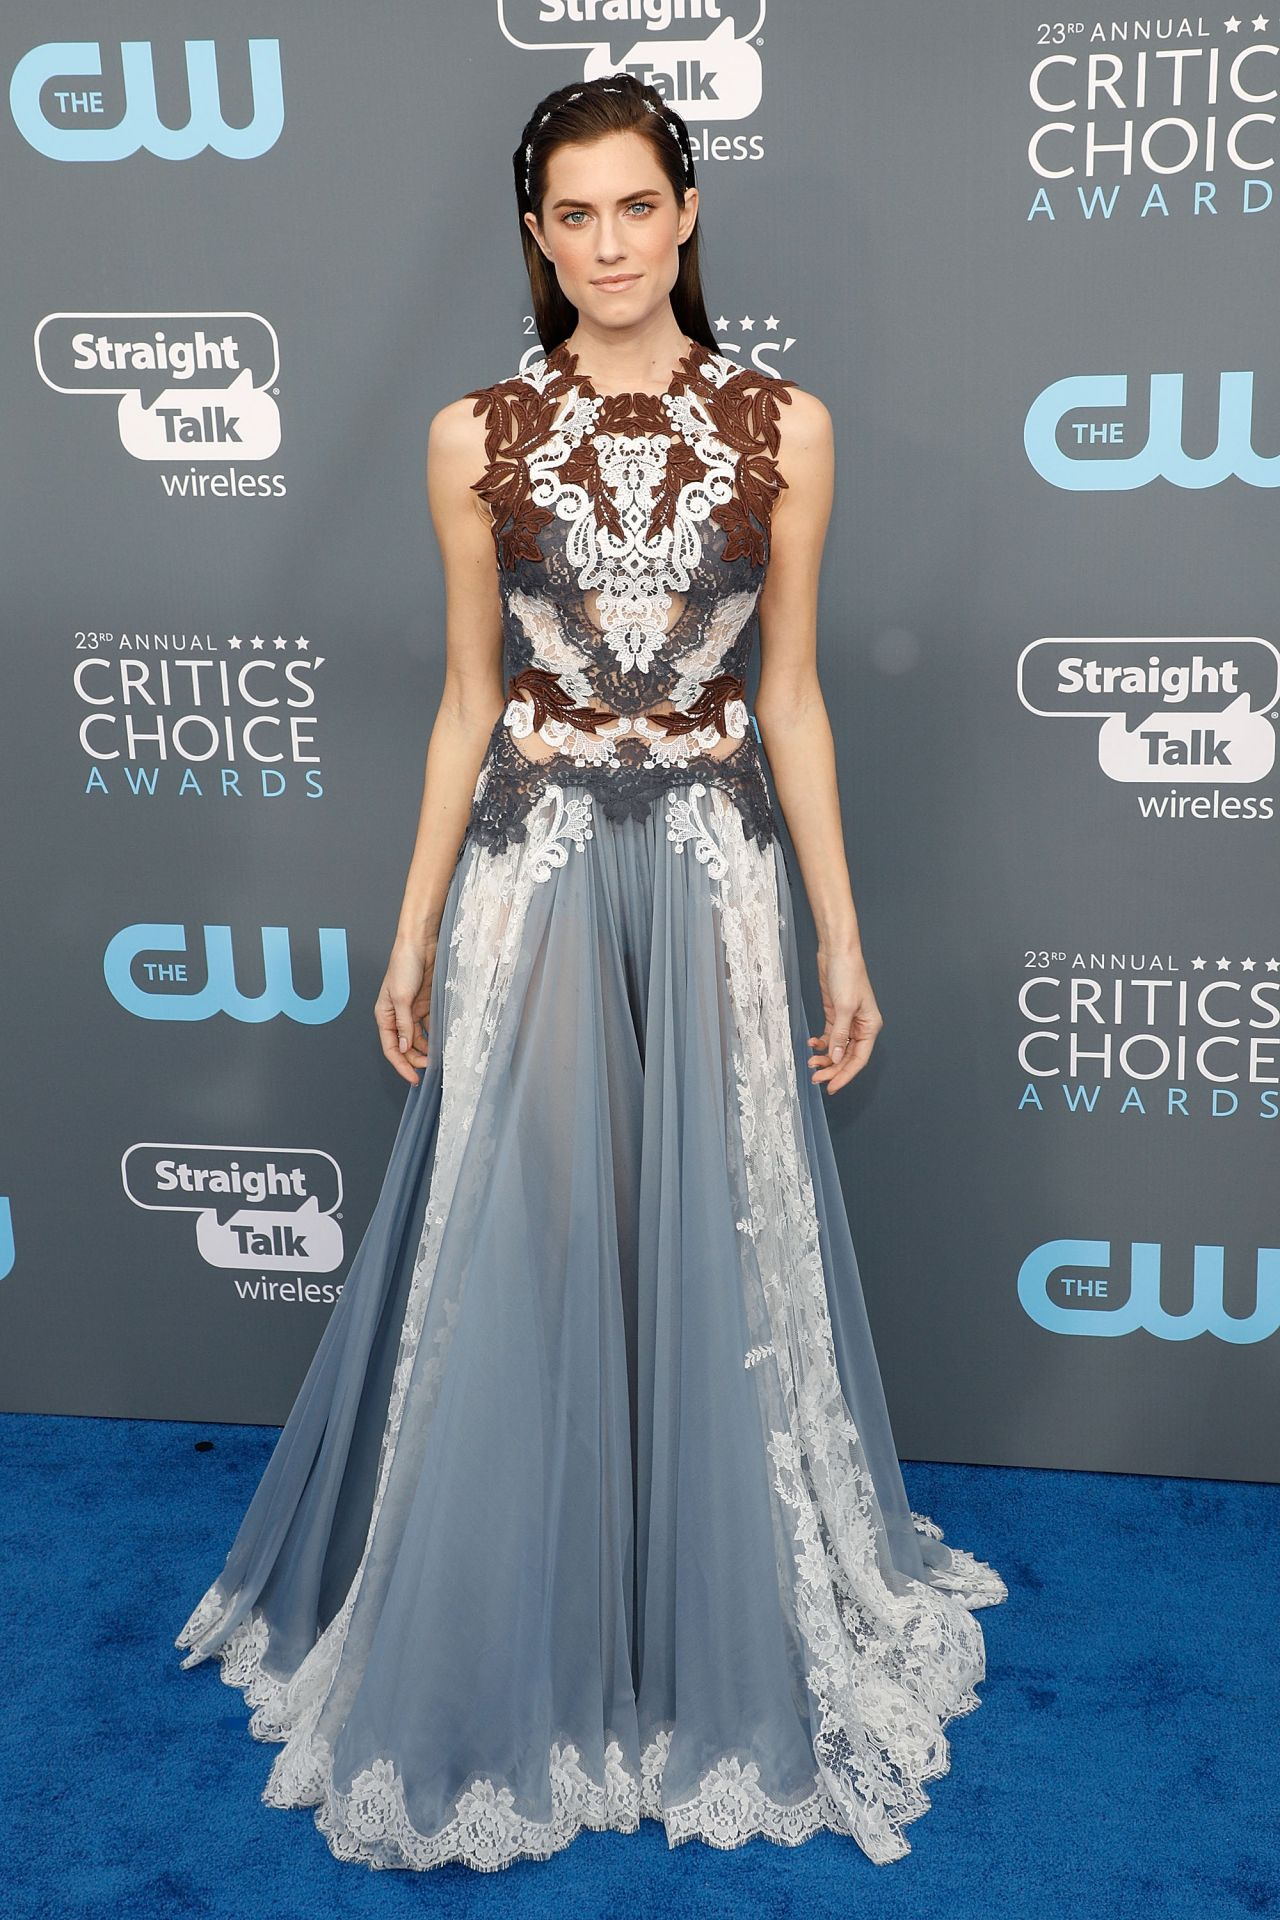 http://celebmafia.com/wp-content/uploads/2018/01/allison-williams-2018-critics-choice-awards-9.jpg